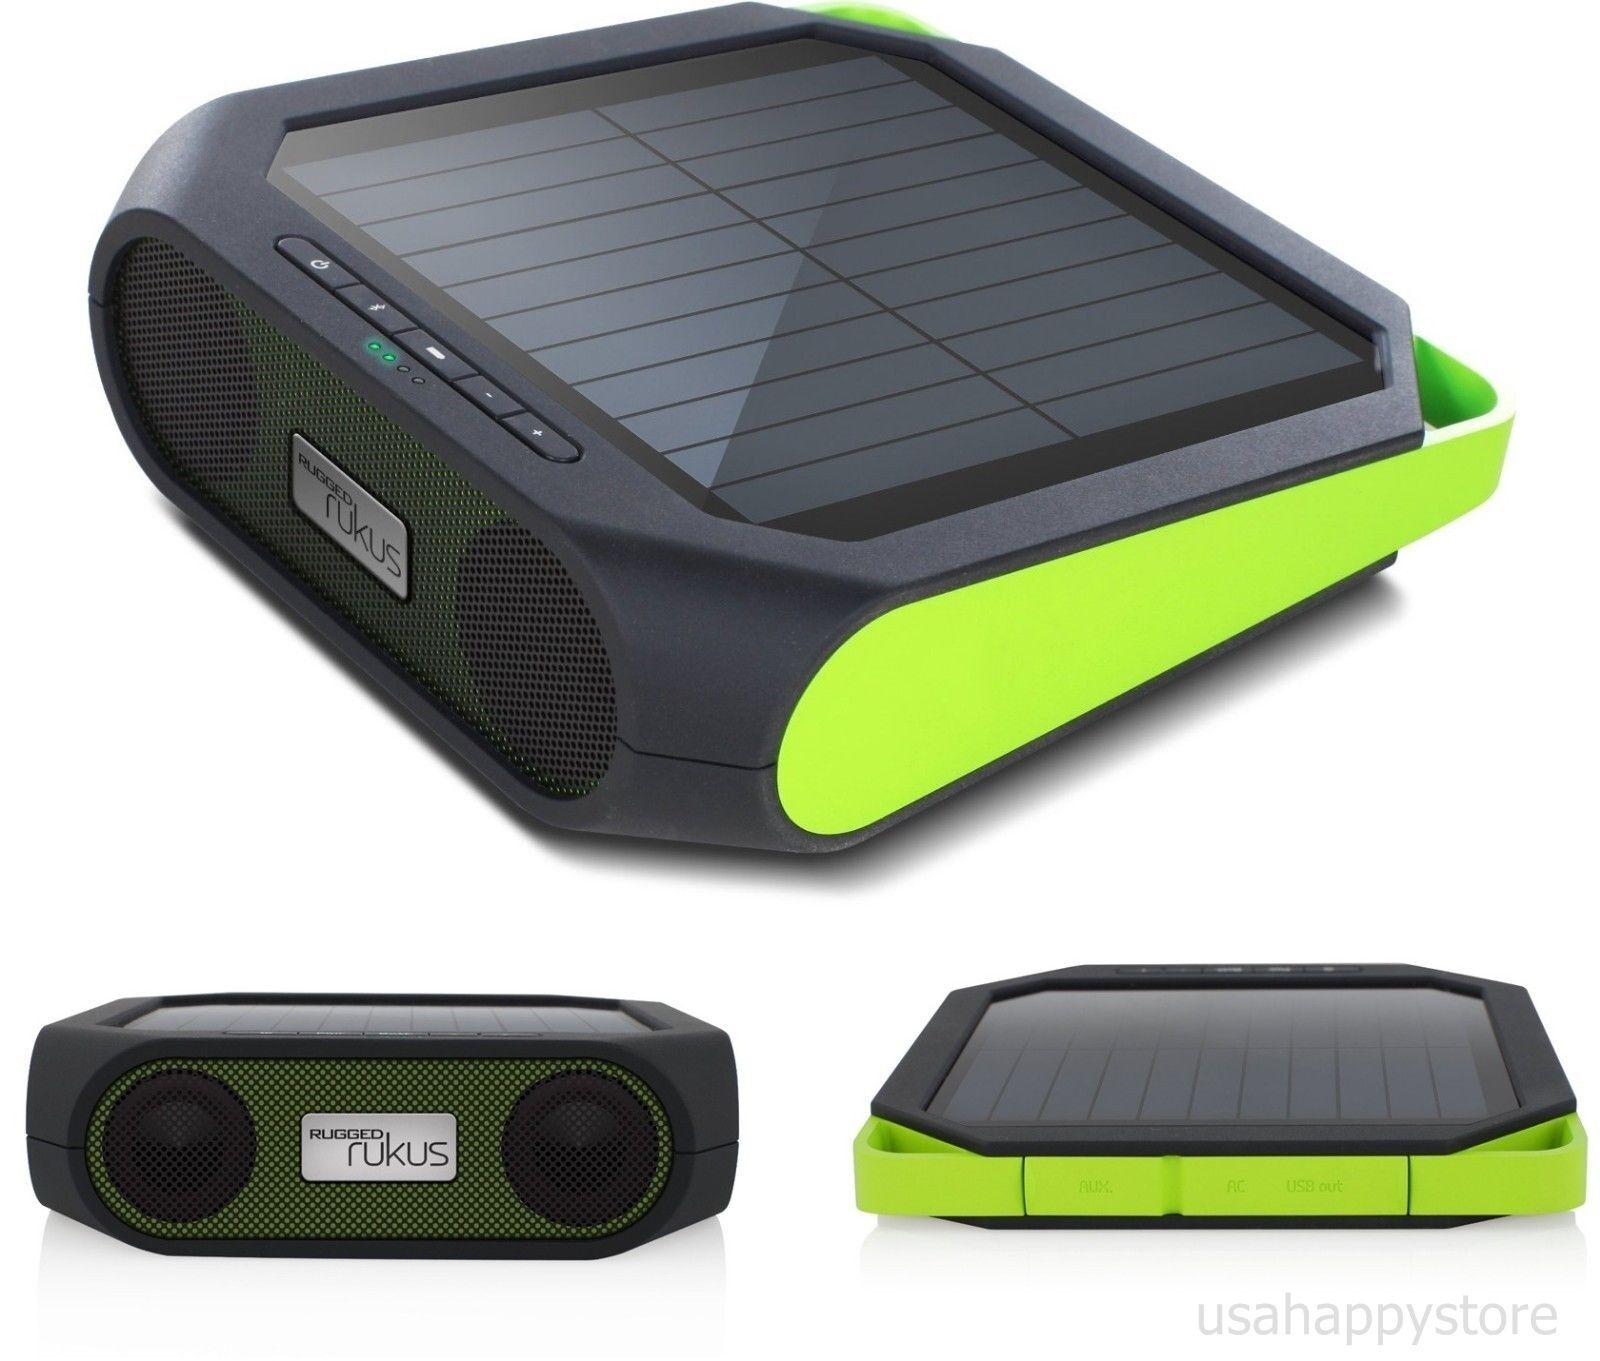 Portable Charger Generator Portable Bluetooth Speaker Homemade Net Playz 12x6 Portable Soccer Goal You Tv Player Pc Portable: Portable Speakers Bluetooth Solar Smartphone Charger USB